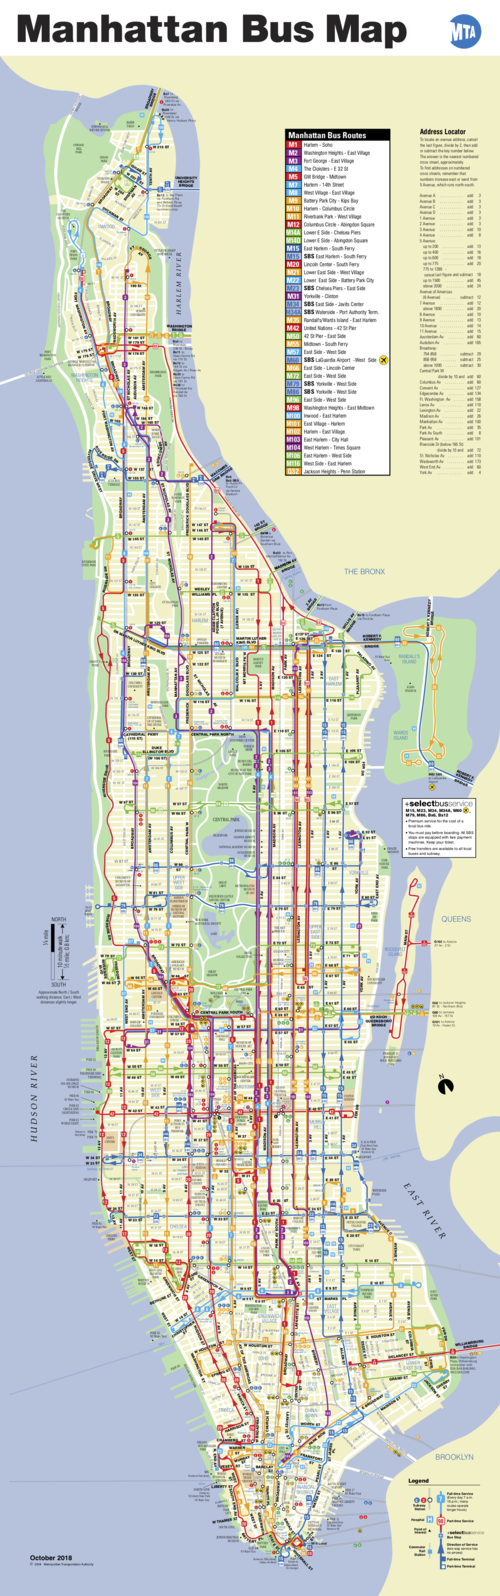 New York City Buses & Express Buses — Tunnel Time Brooklyn Bus Map on brooklyn transportation map, mta bus company bus schedule, brooklyn quotes, brooklyn on map, b63 route map, nyc subway map, brooklyn buses map, brooklyn tumblr, brooklyn train map, brooklyn neighborhoods, heart of brooklyn, onnyturf : google map nyc-subway hack, brooklyn subway, brooklyn atlantic terminal stores, brooklyn elevated railroad, brooklyn queens map, brooklyn street map, brooklyn warehouse fire, brooklyn middle school, brooklyn school map, brooklyn ghetto, brooklyn new york,